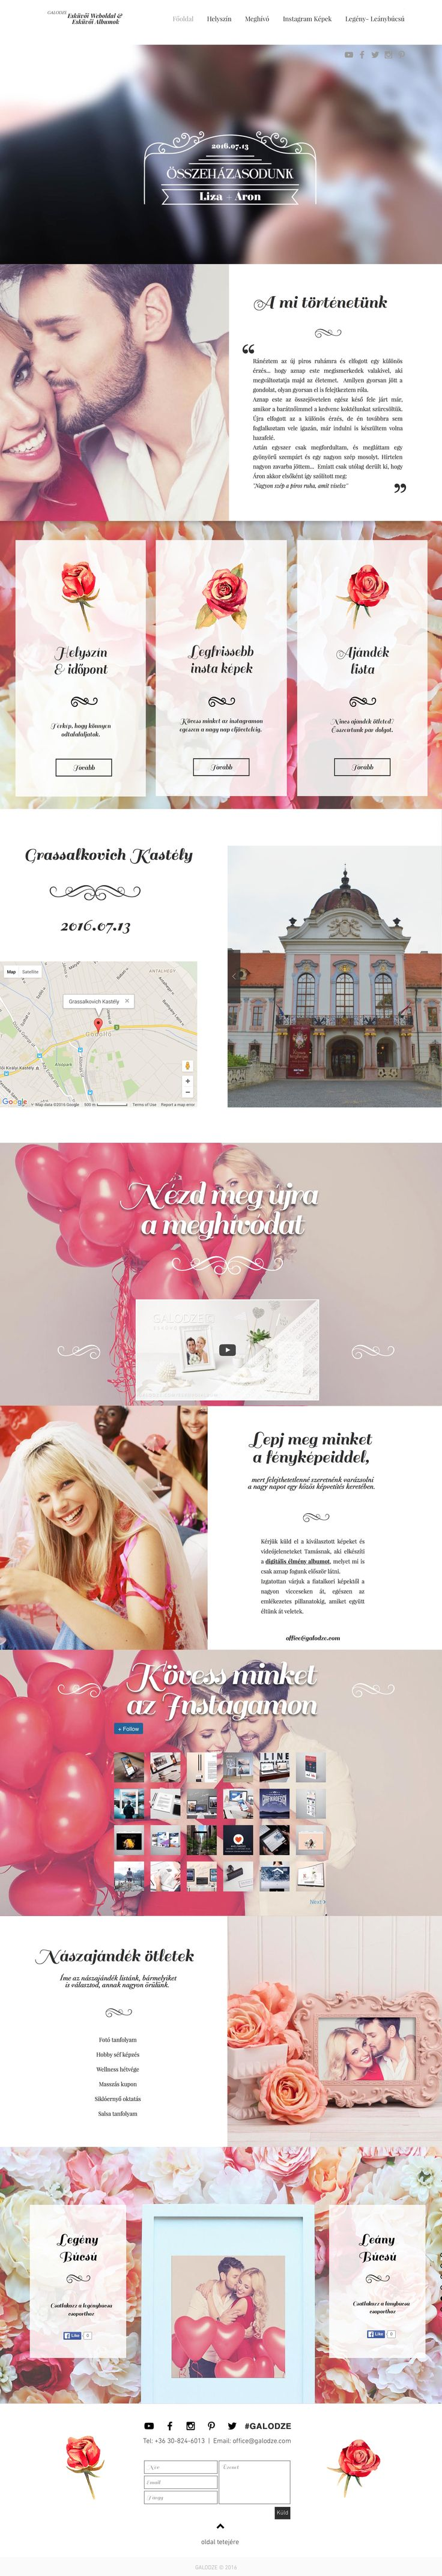 Galodze Wedding Site I.  Ready for customization according to your style. Get in touch with us: office@galodze.com Get Social: http://facebook.com/galodze http://youtube.com/GalodzeHungary http://instagram.com/galodze